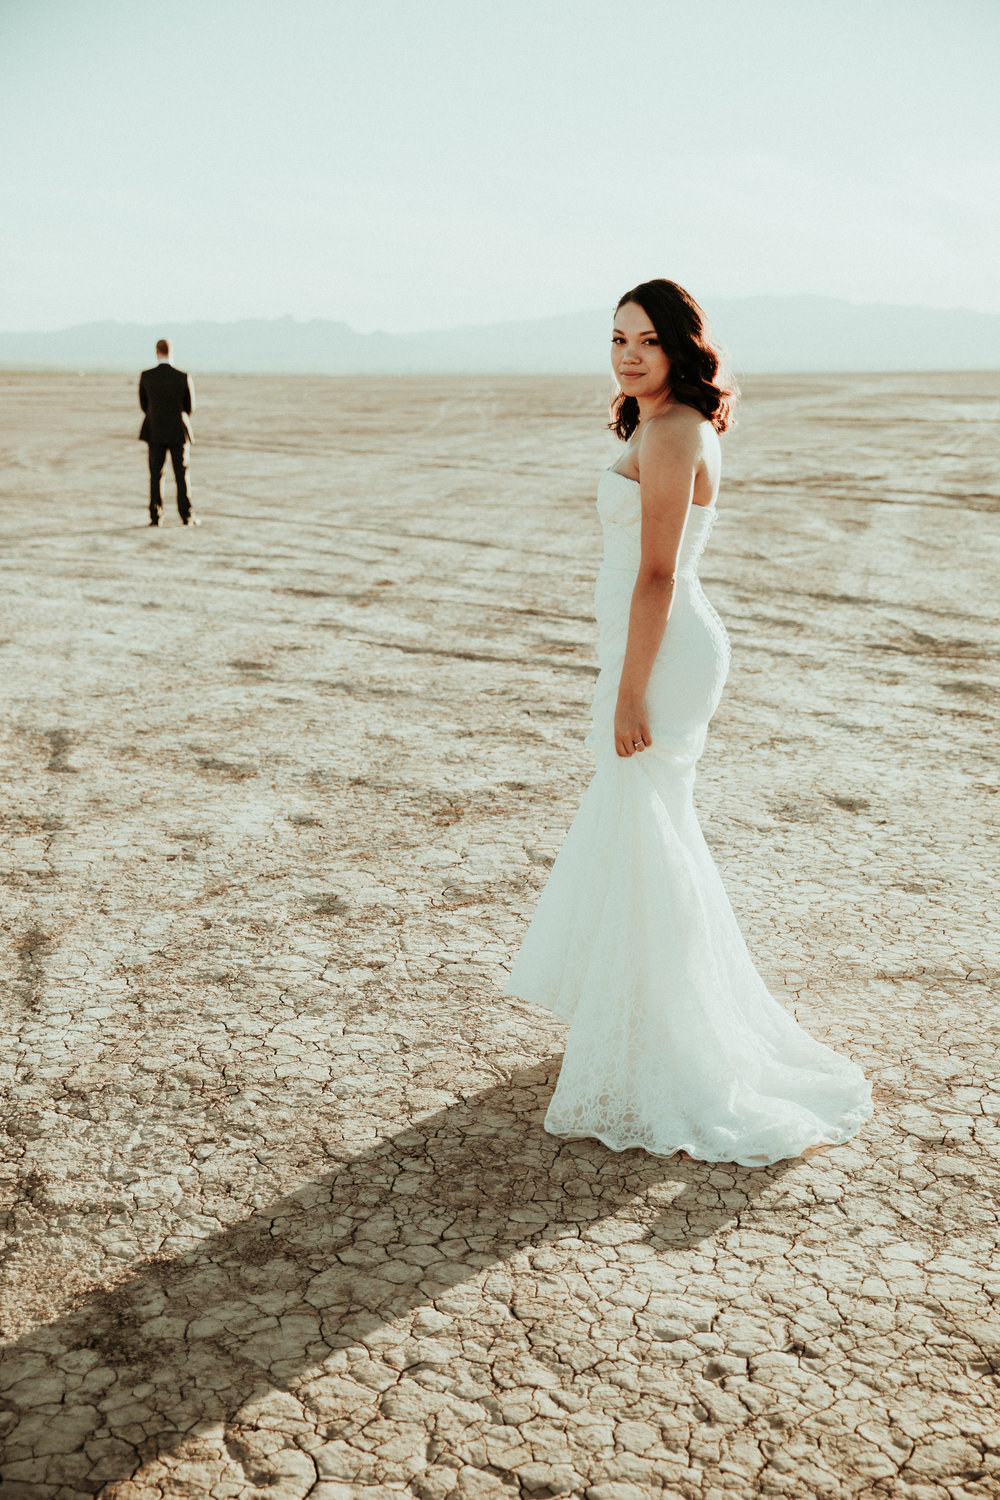 Seattle Wedding Photography - Las Vegas Rustic Wedding - First Look - Dry Lake Bed - PNW Elopement Photographer - Portland Photographer - Seattle Engagement Photographer